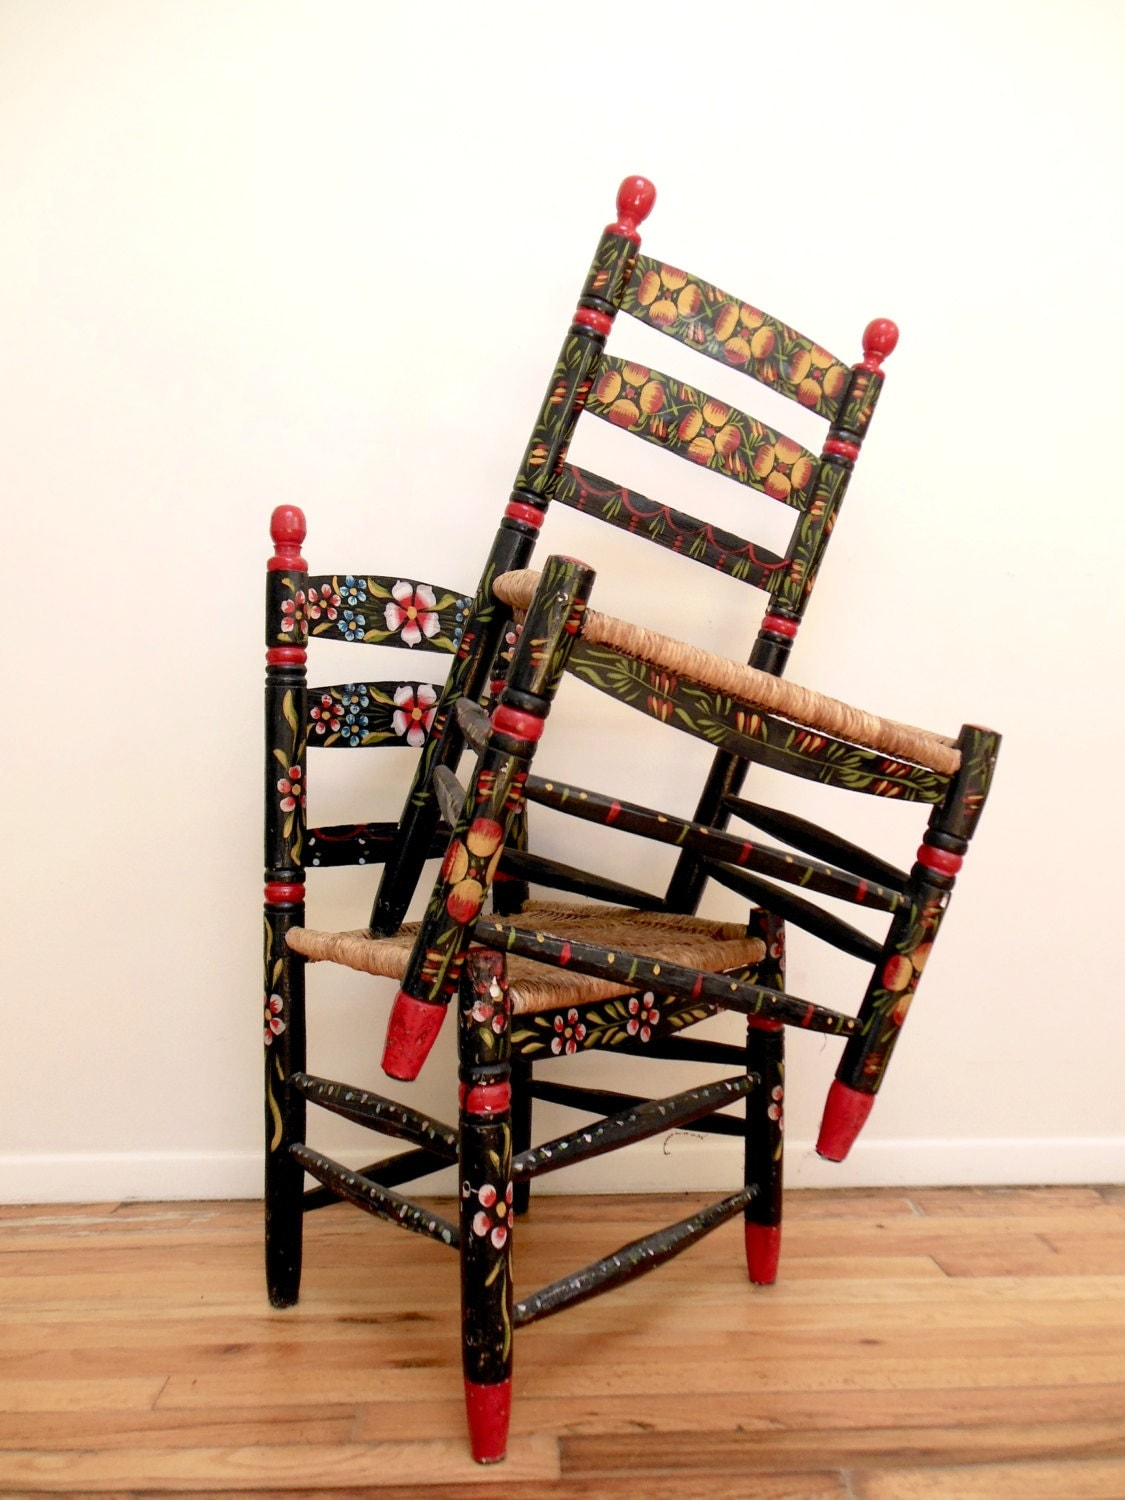 Hand Chairs Mexican Folk Art Chairs Hand Painted Floral Impossibly